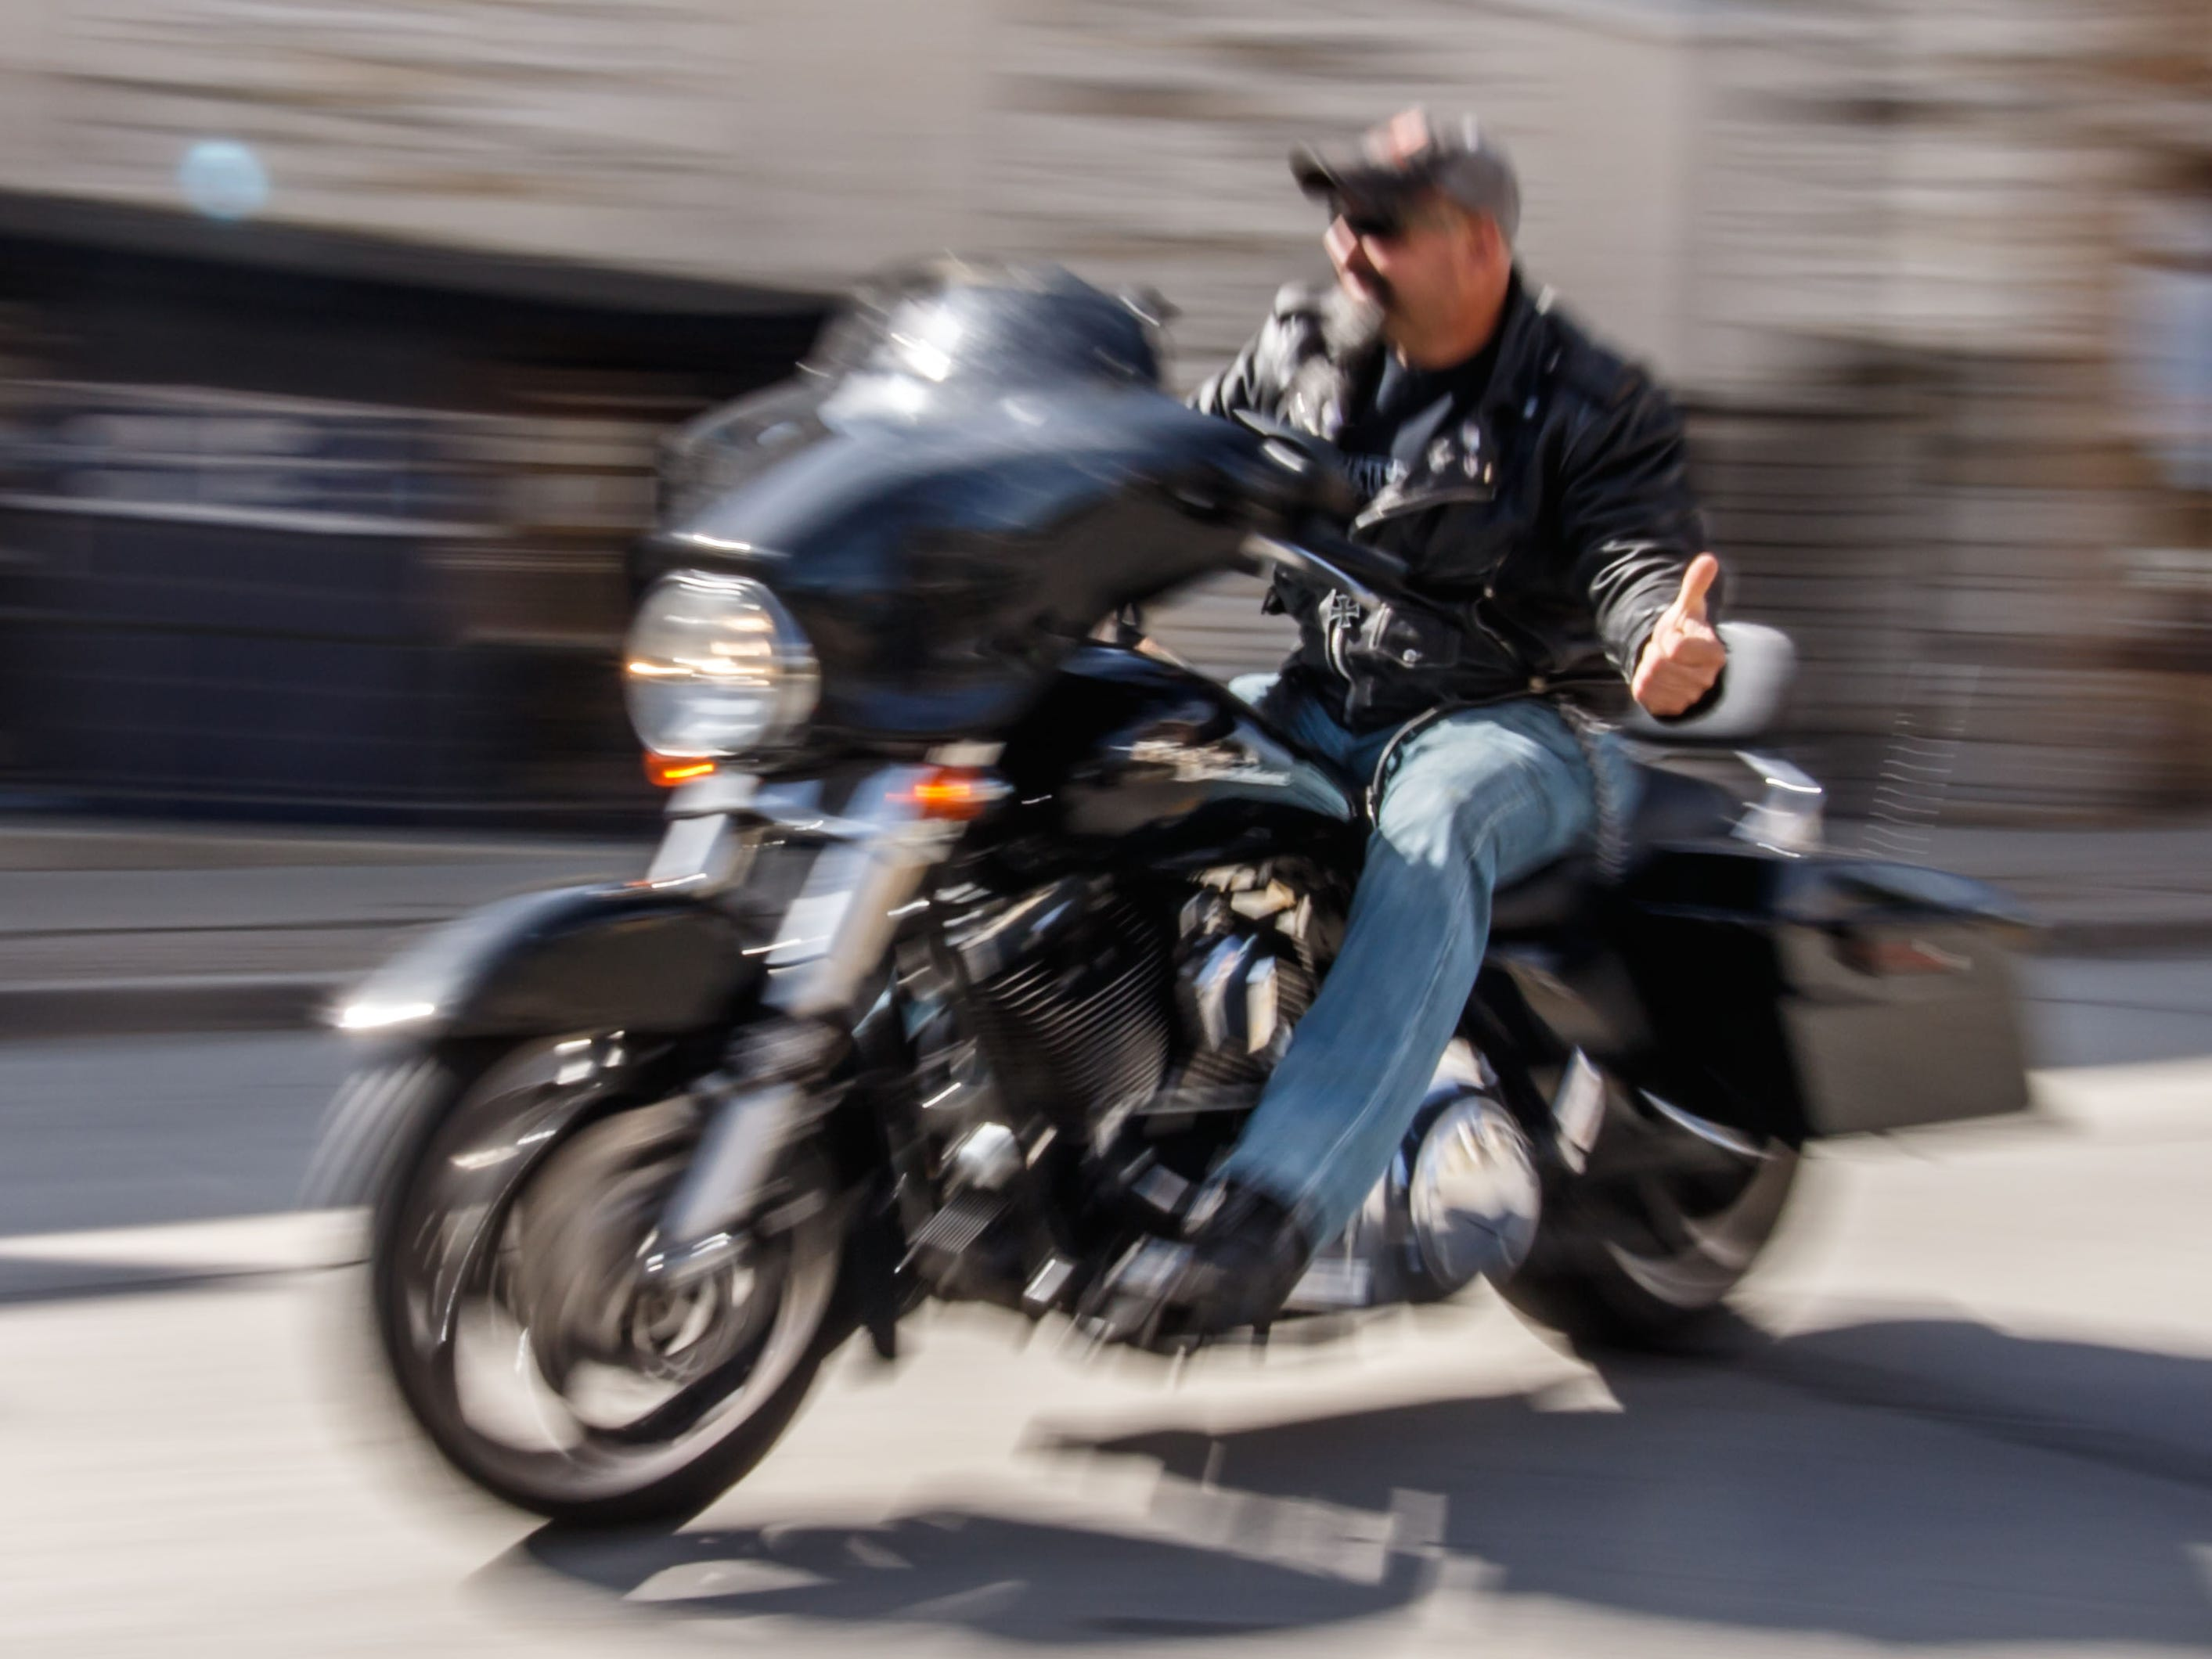 """A motorcyclist departs for the Angels of the Road """"Ride for Veterans"""" inaugural benefit ride hosted by the Henrizi-Schneider American Legion Post 382 in Menomonee Falls on Sunday, Sept. 9, 2018. Proceeds from the ride will benefit the Milwaukee Homeless Veterans Initiative."""